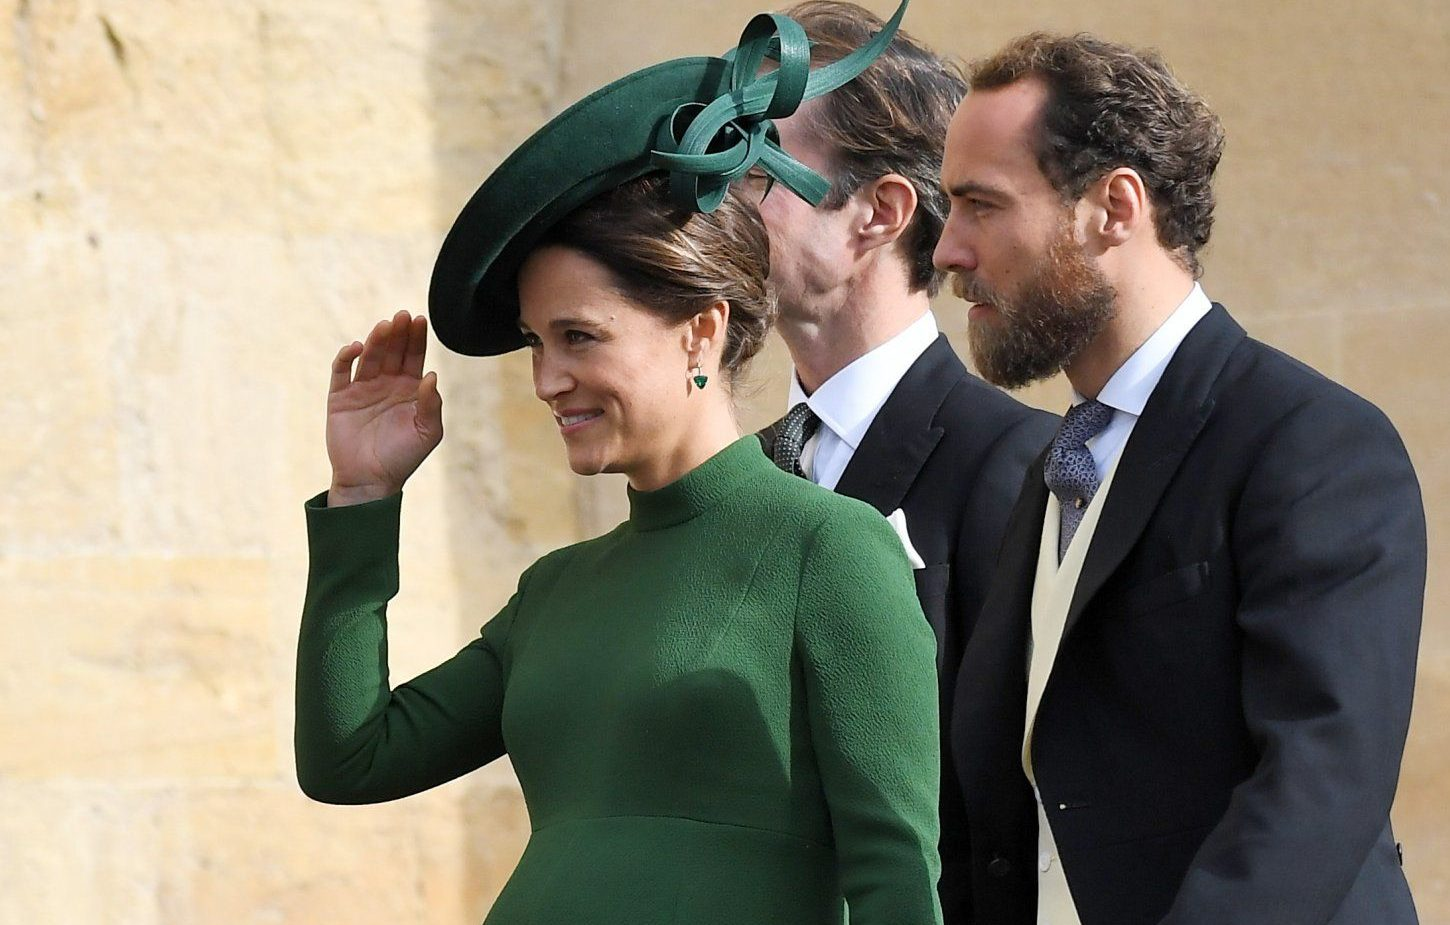 Mandatory Credit: Photo by James Gourley/REX (9927740cb) Pippa Middleton and James Middleton The wedding of Princess Eugenie and Jack Brooksbank, Pre-Ceremony, Windsor, Berkshire, UK - 12 Oct 2018